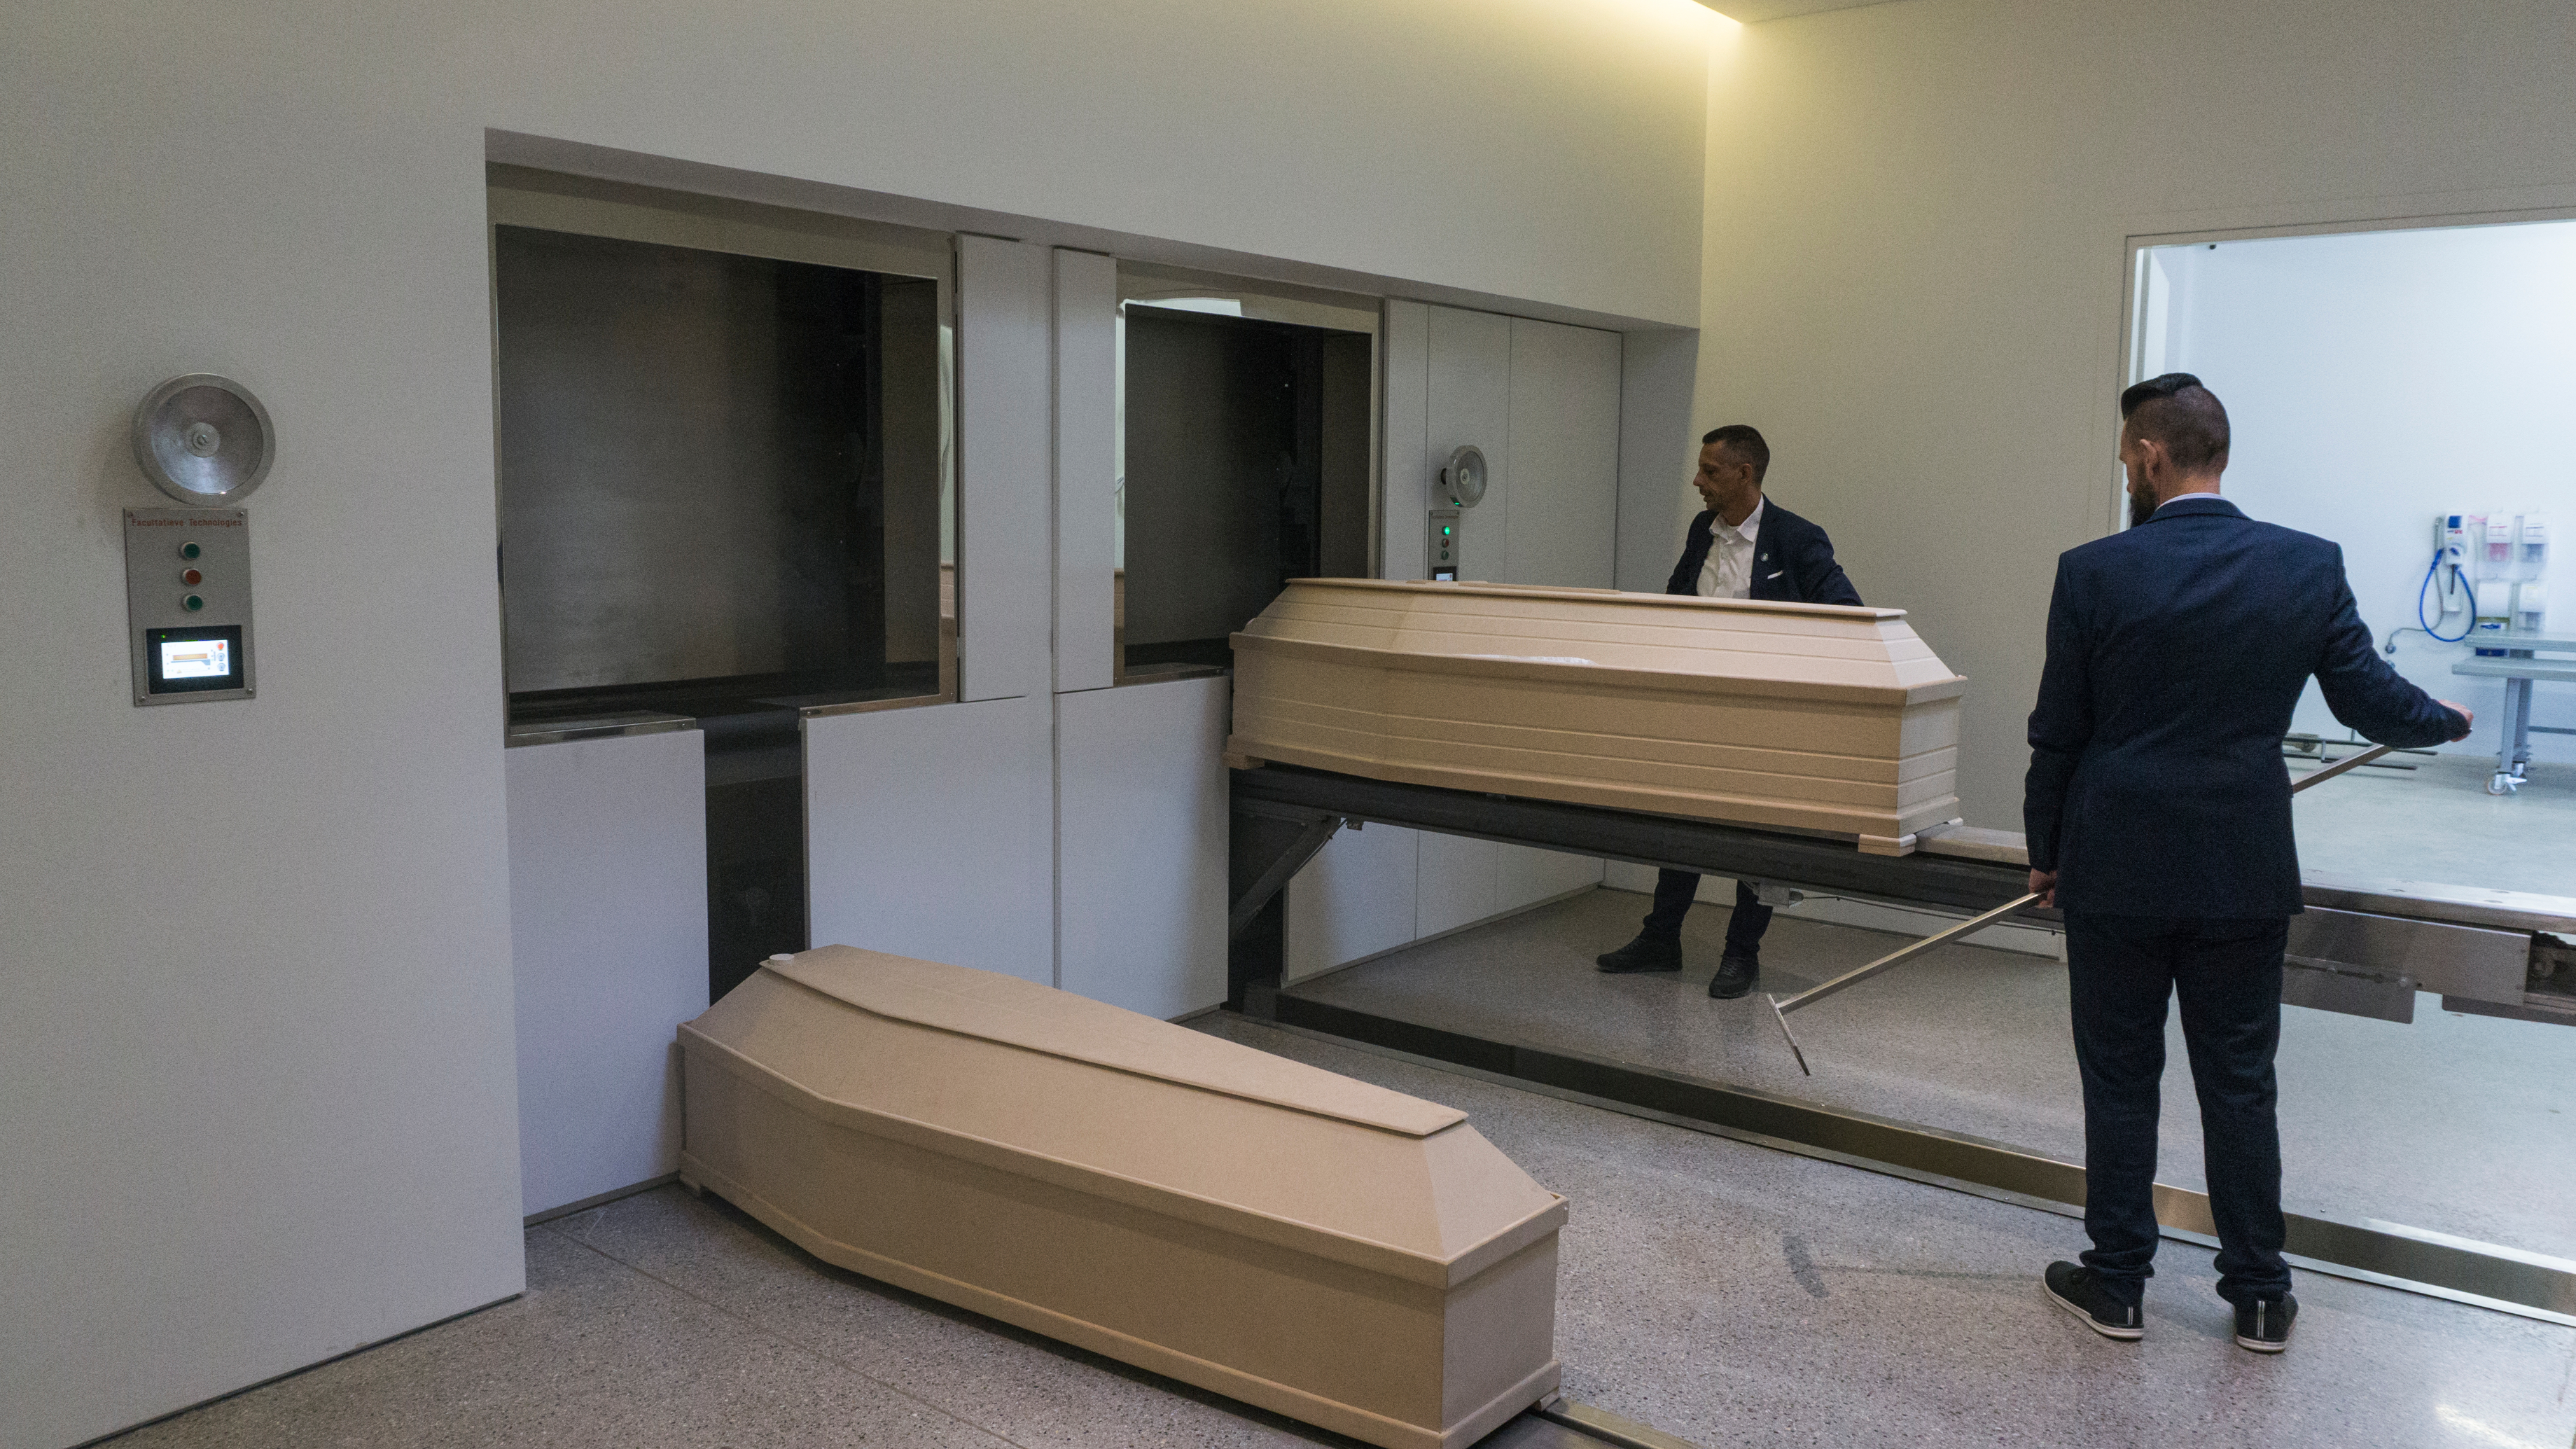 Two men in suits place beige-colored coffins in incinerators